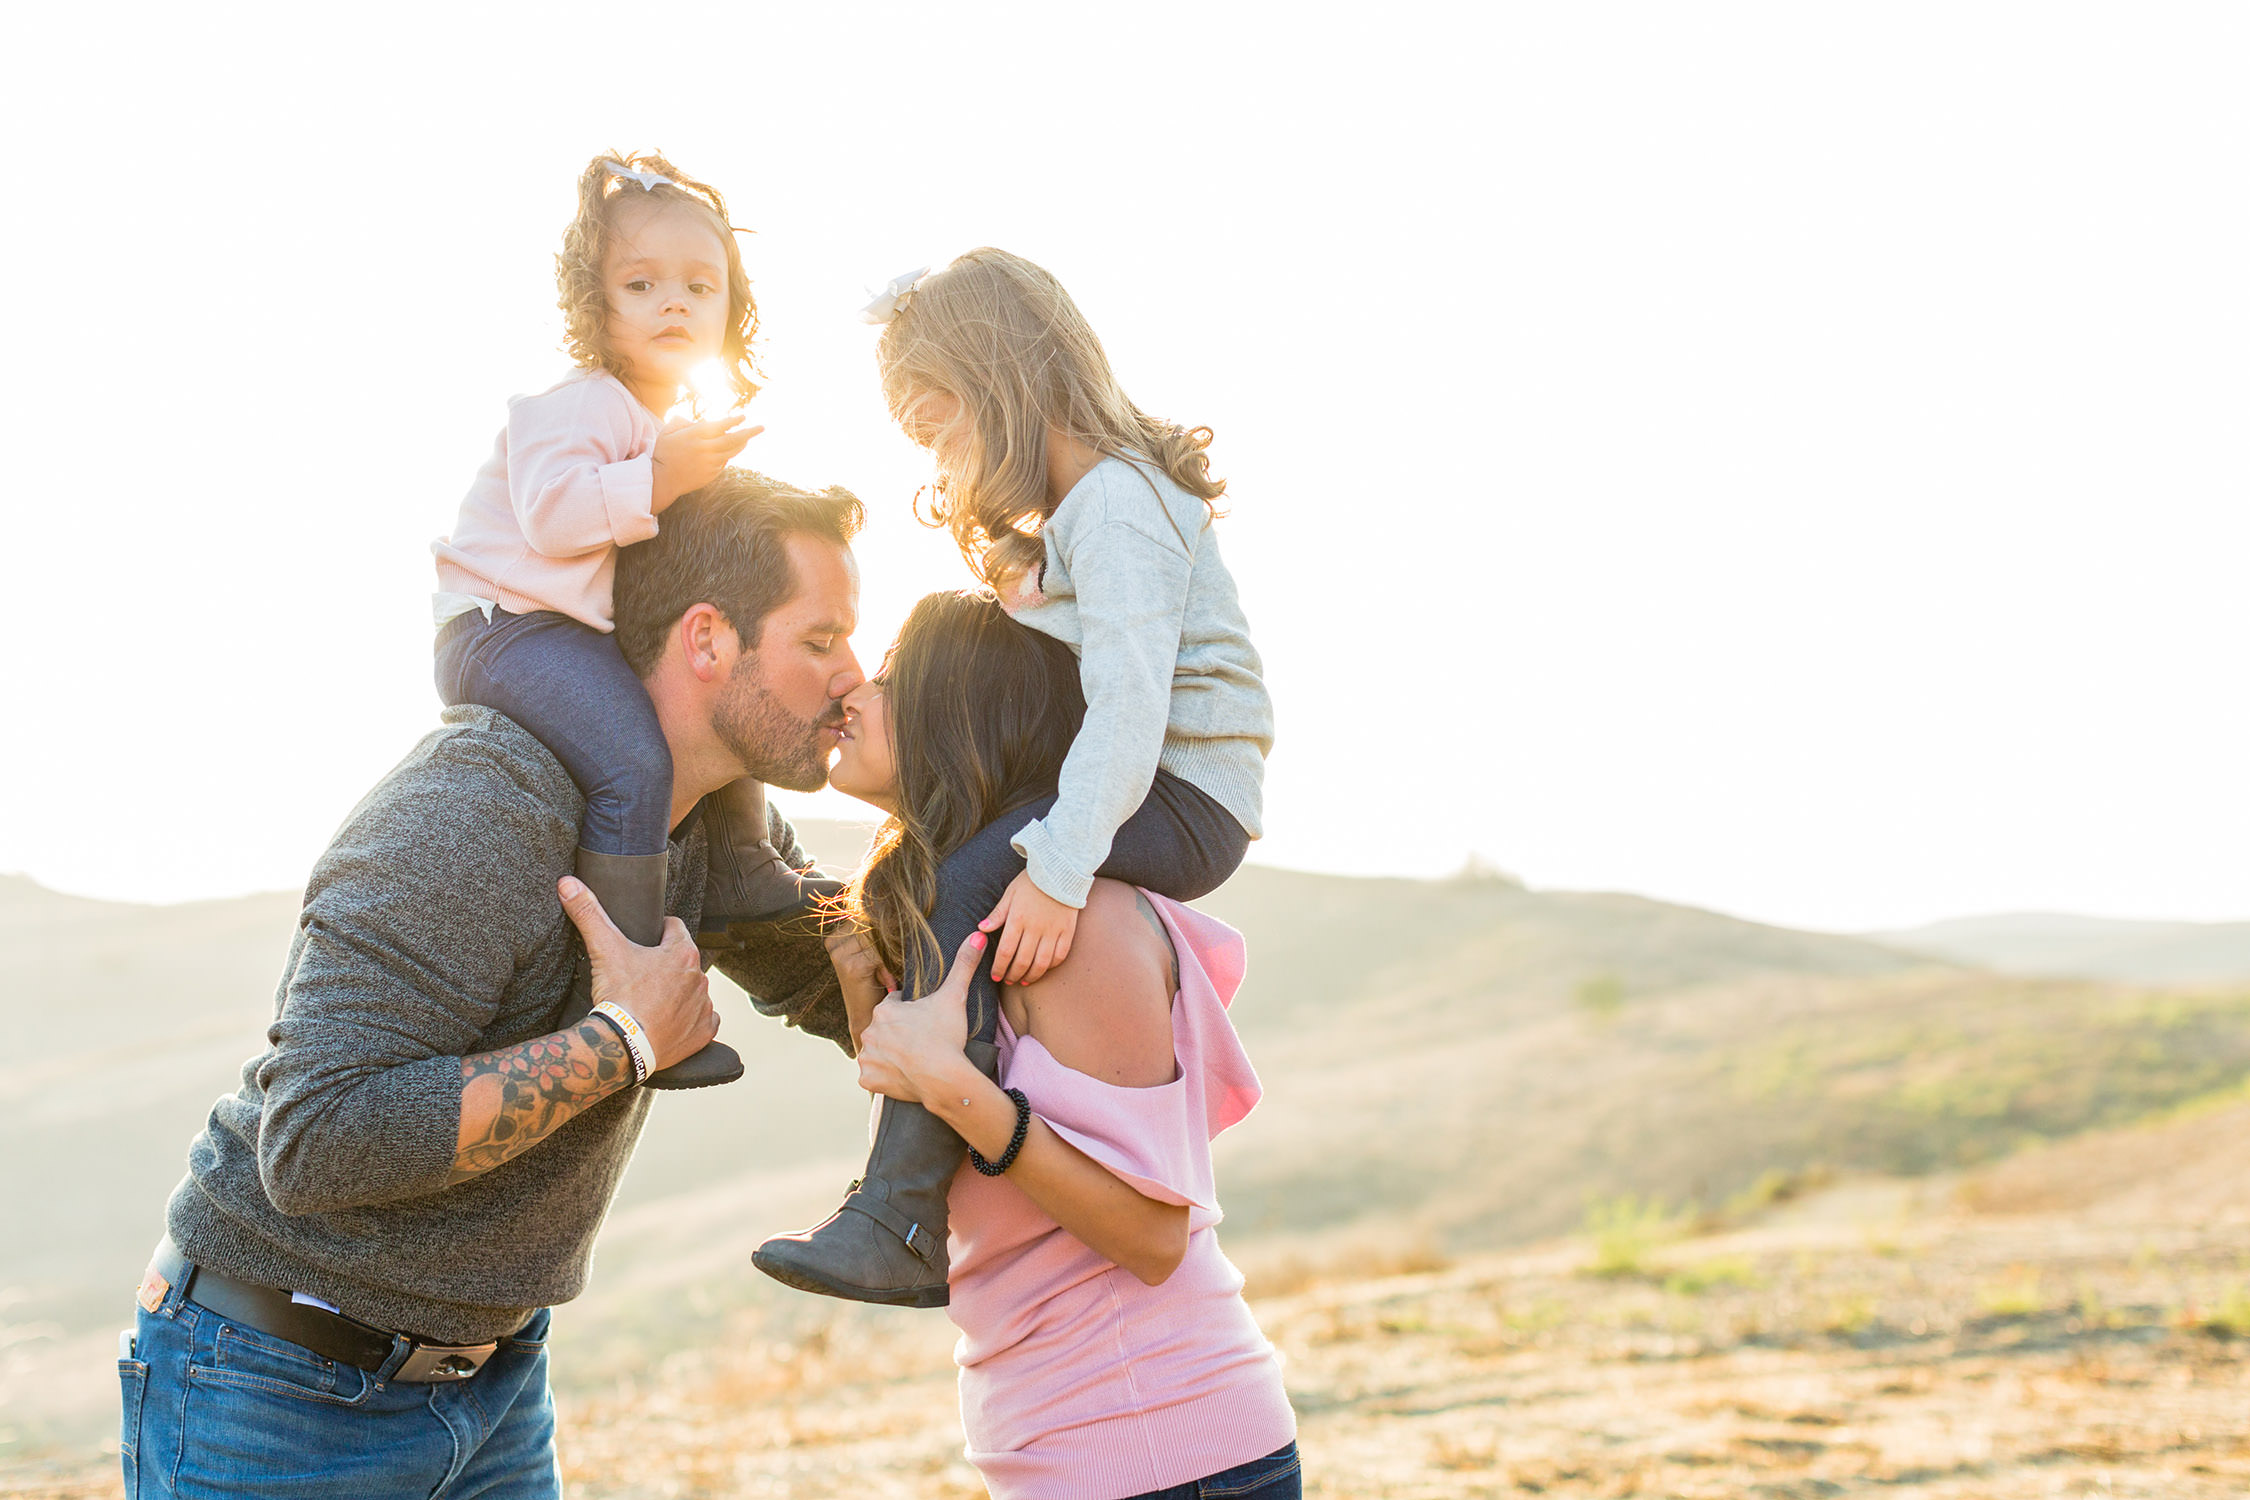 Family Session at trailhead in Chino Hills, California